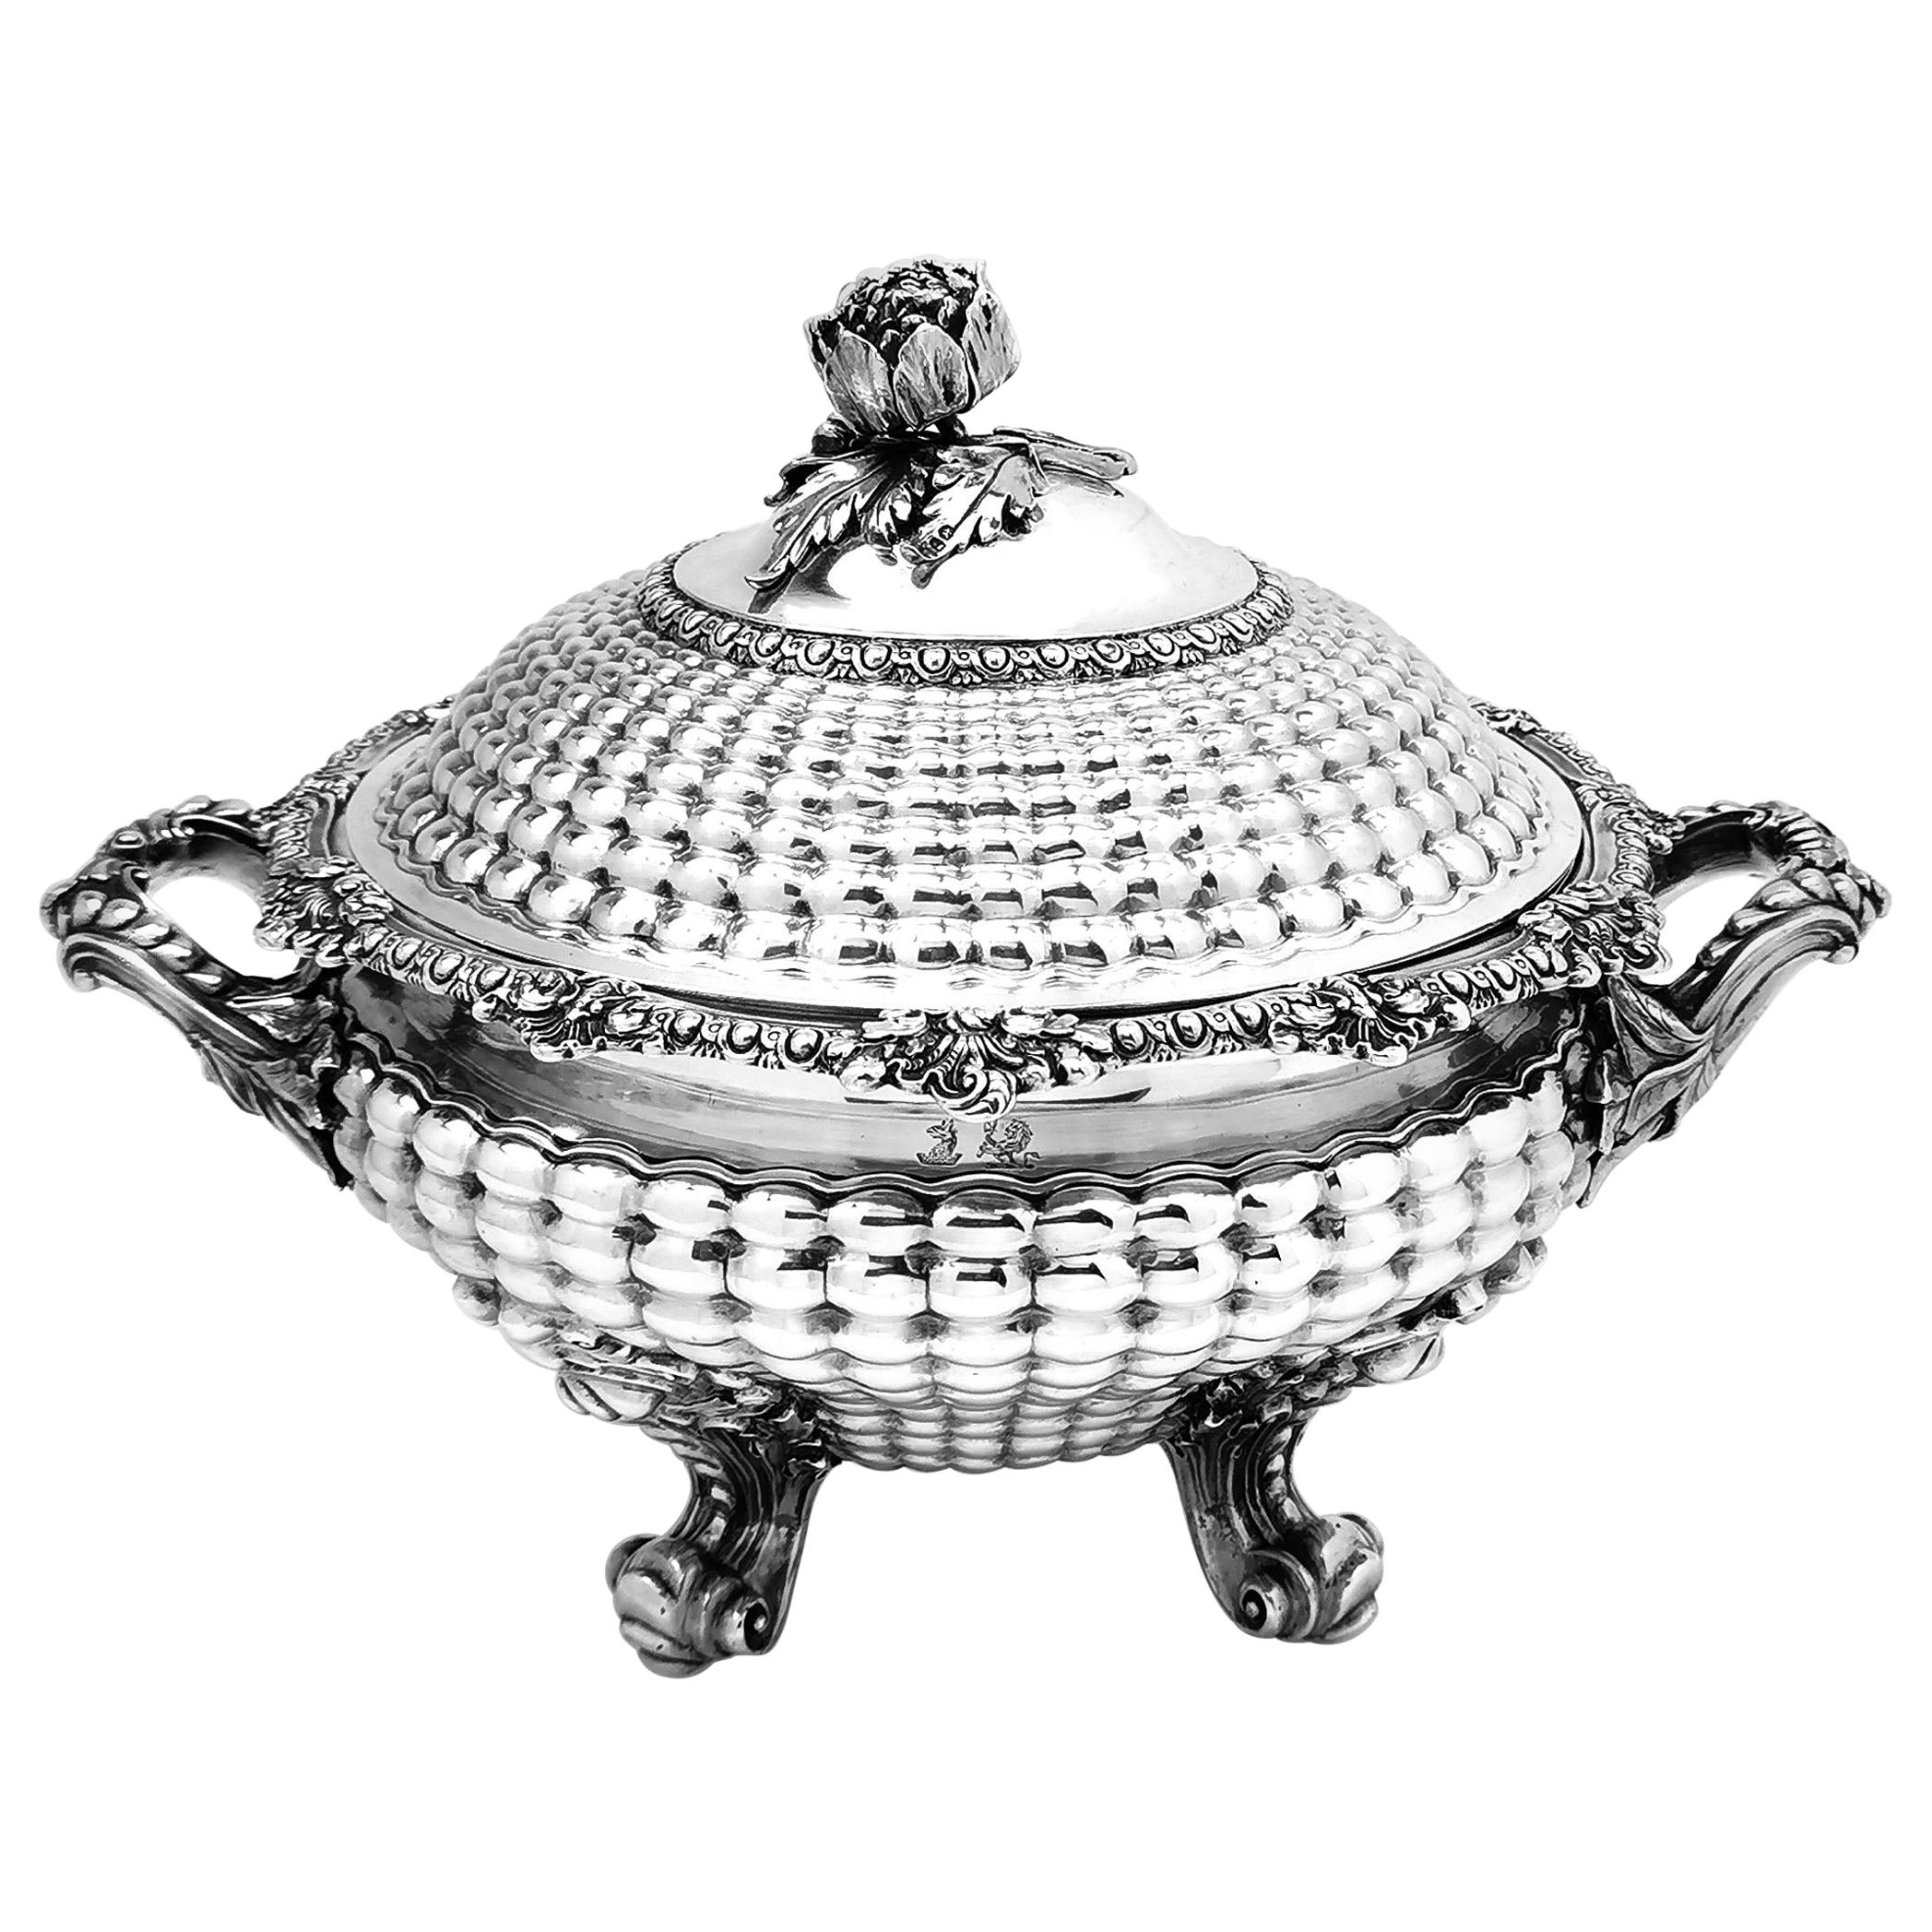 Rare Antique Georgian Sterling Silver Soup Tureen Quilted Pattern, 1827